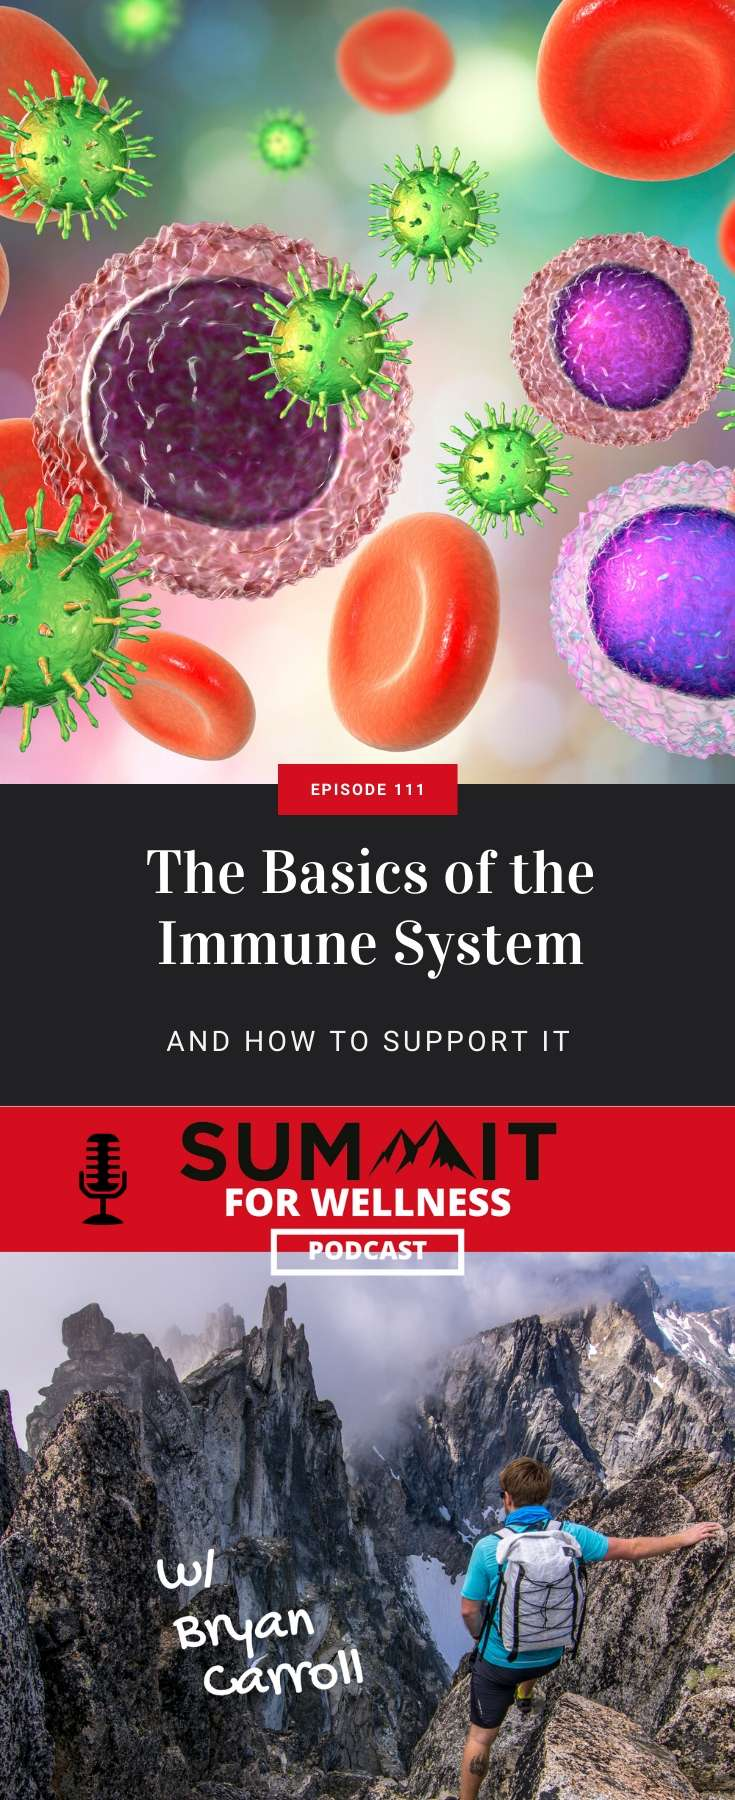 Learn the basics of the immune system and how it protects you